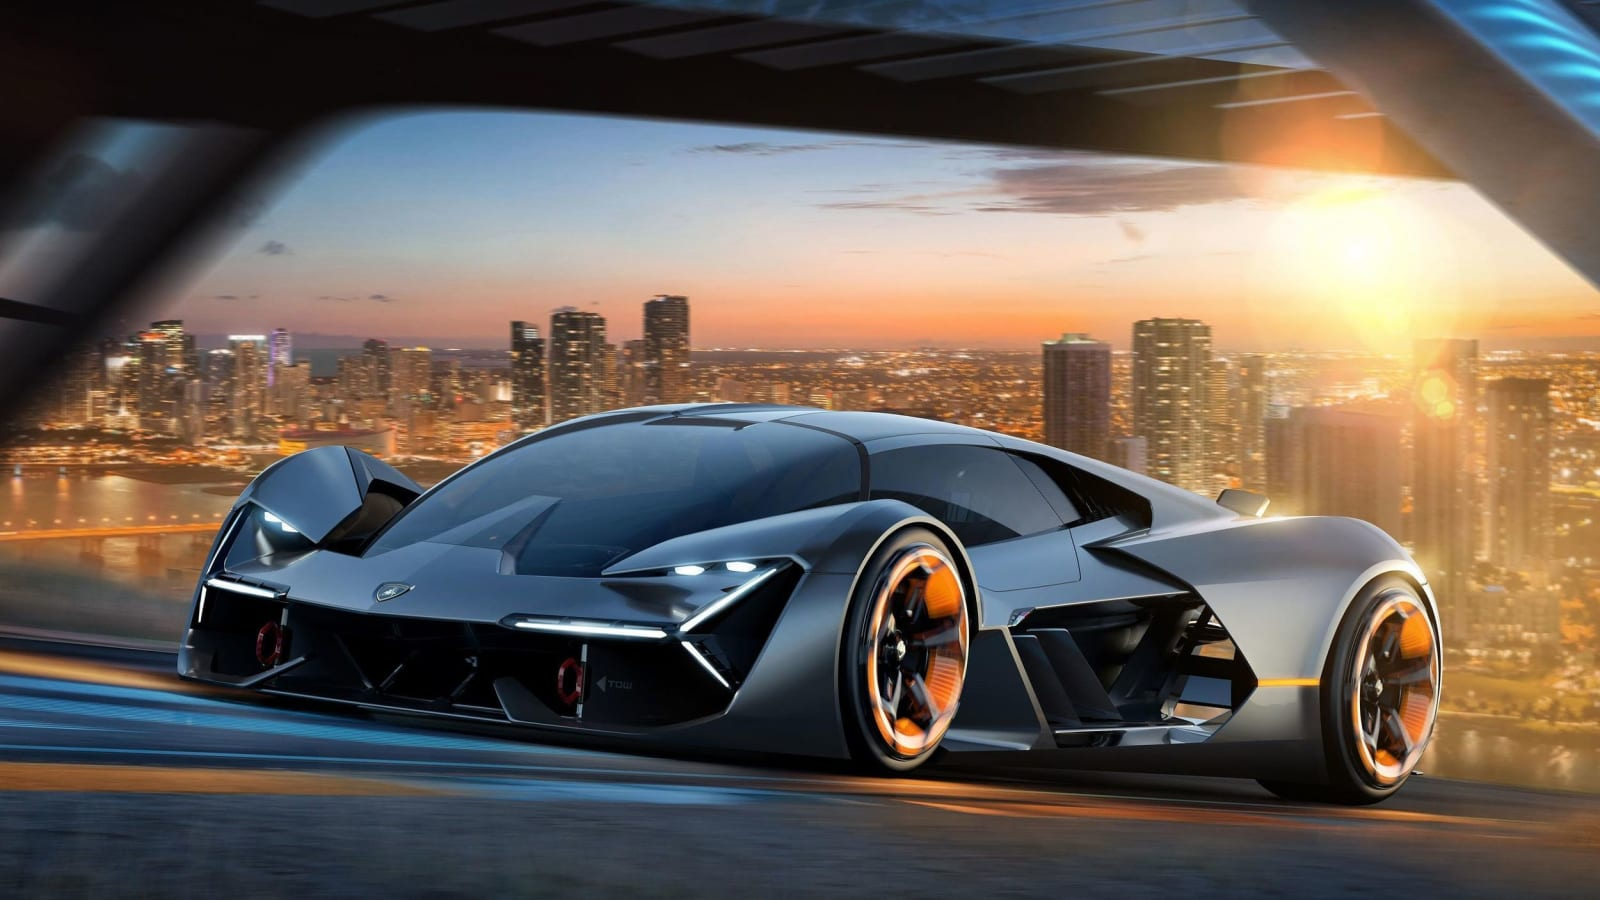 Lamborghini LB48H hypercar due next year: You might even say it glows